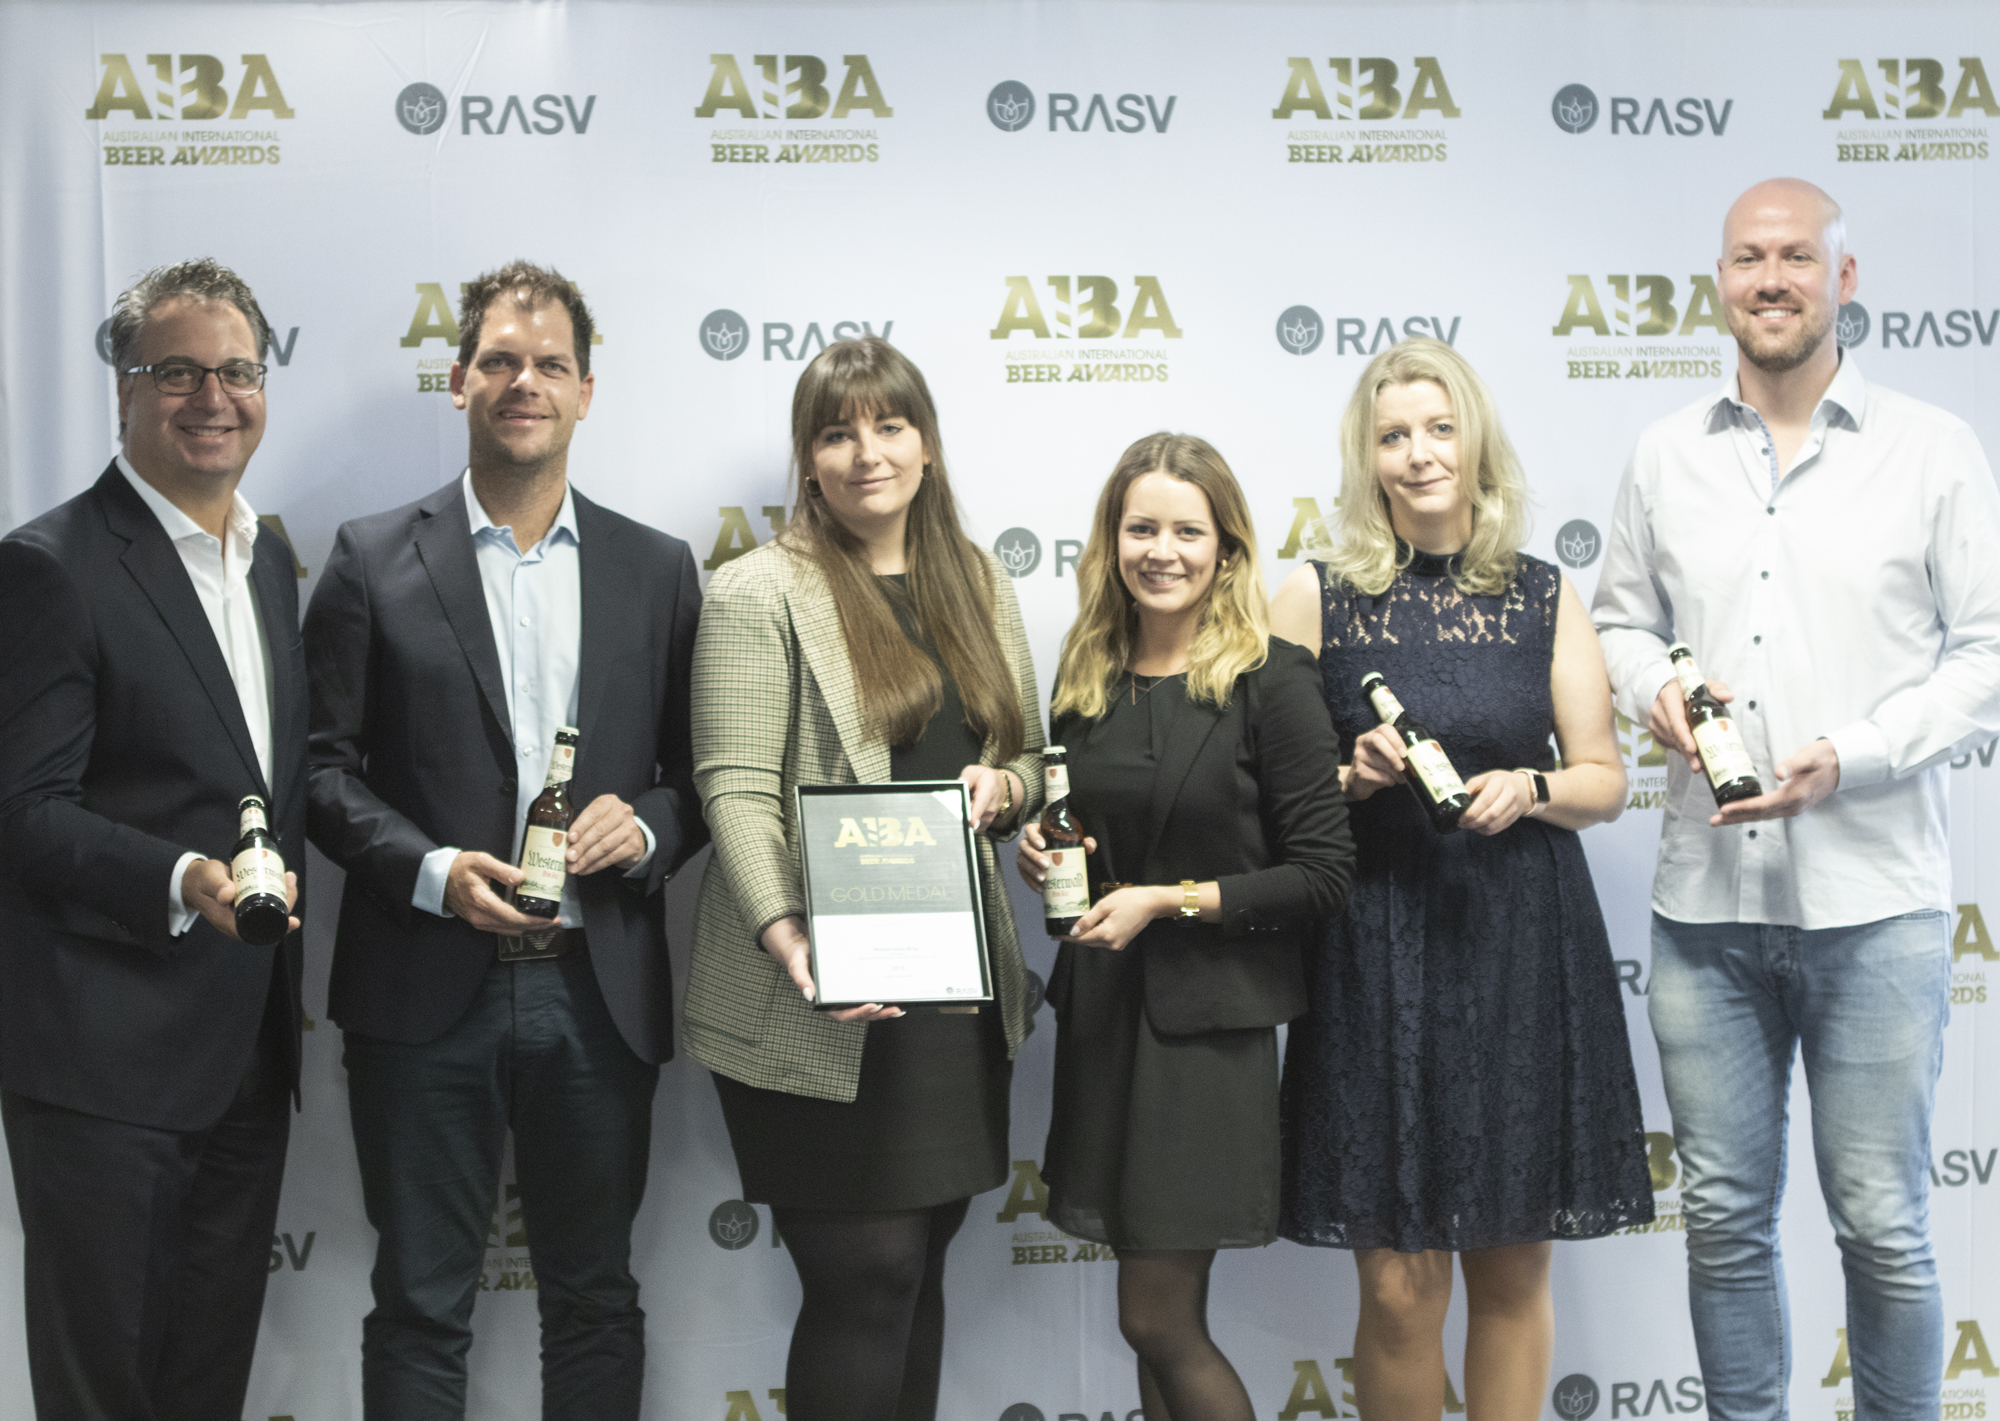 From left: Paul Guerra, CEO, The Royal Agricultural Society of Victoria; Jens Geimer, CEO, Westerwald-Brewery; Sarah Schorge, Head of Export, Westerwald-Brewery, Julika Mueller, Marketing Manager, Westerwald-Brewery; and prize winners Bianca Hof AND Paul Morton.